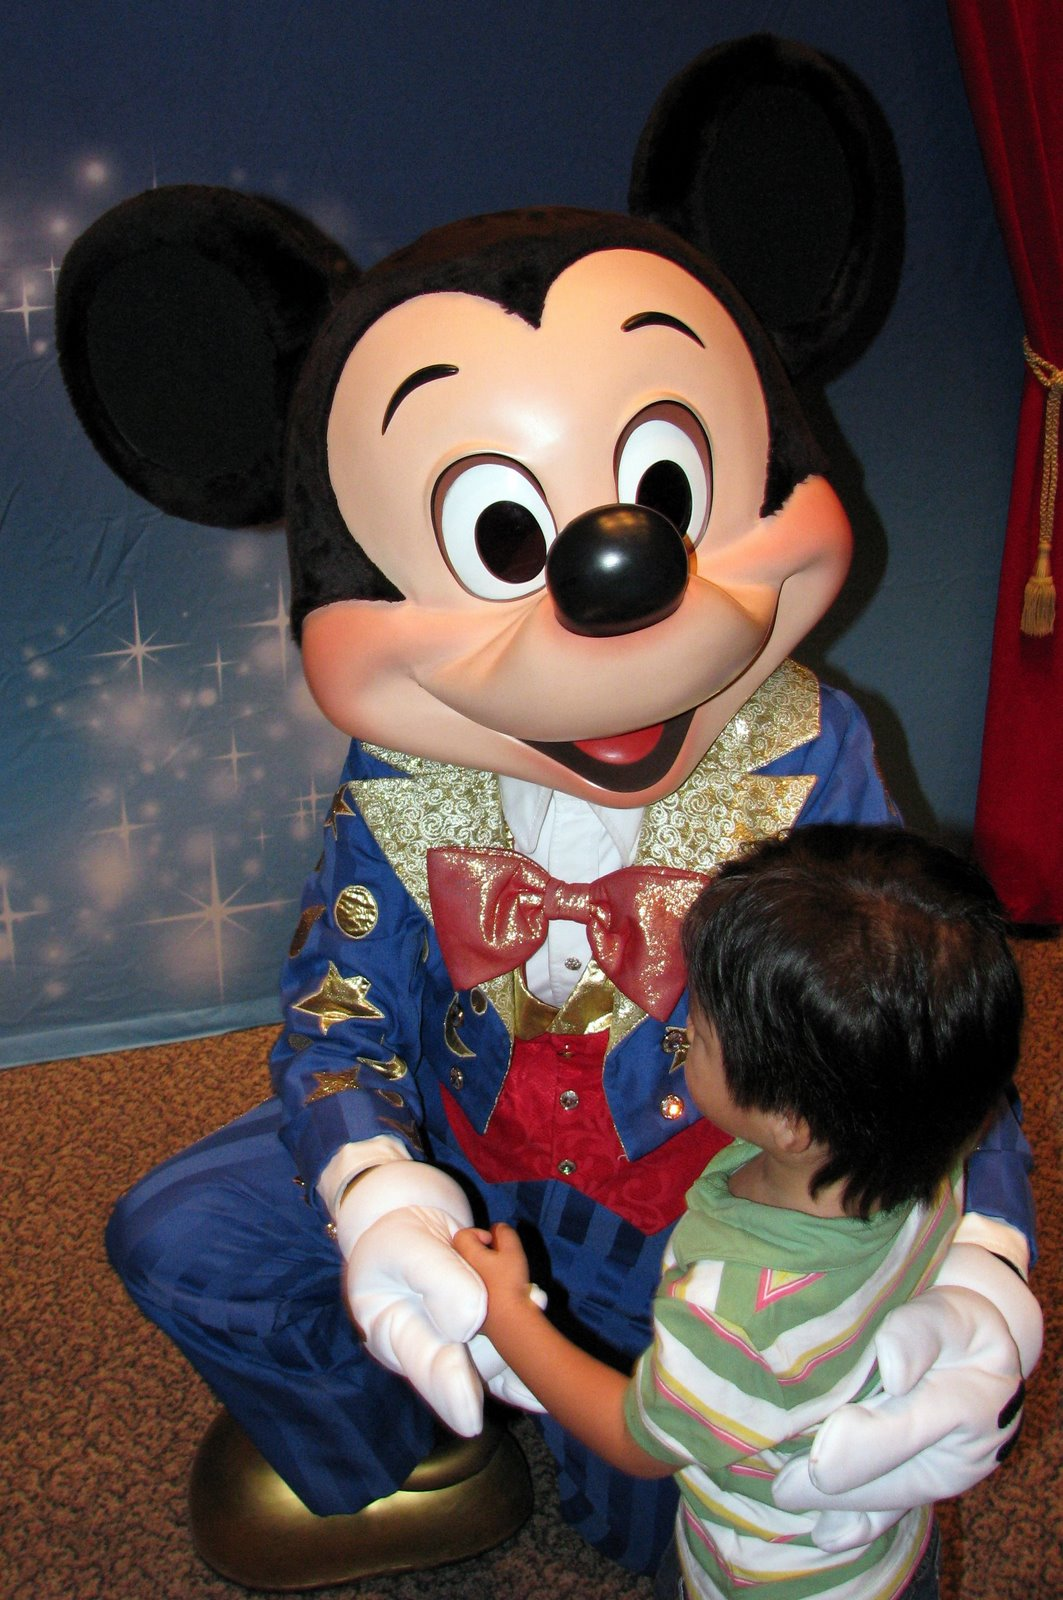 [mickey+&+goofy+meet]